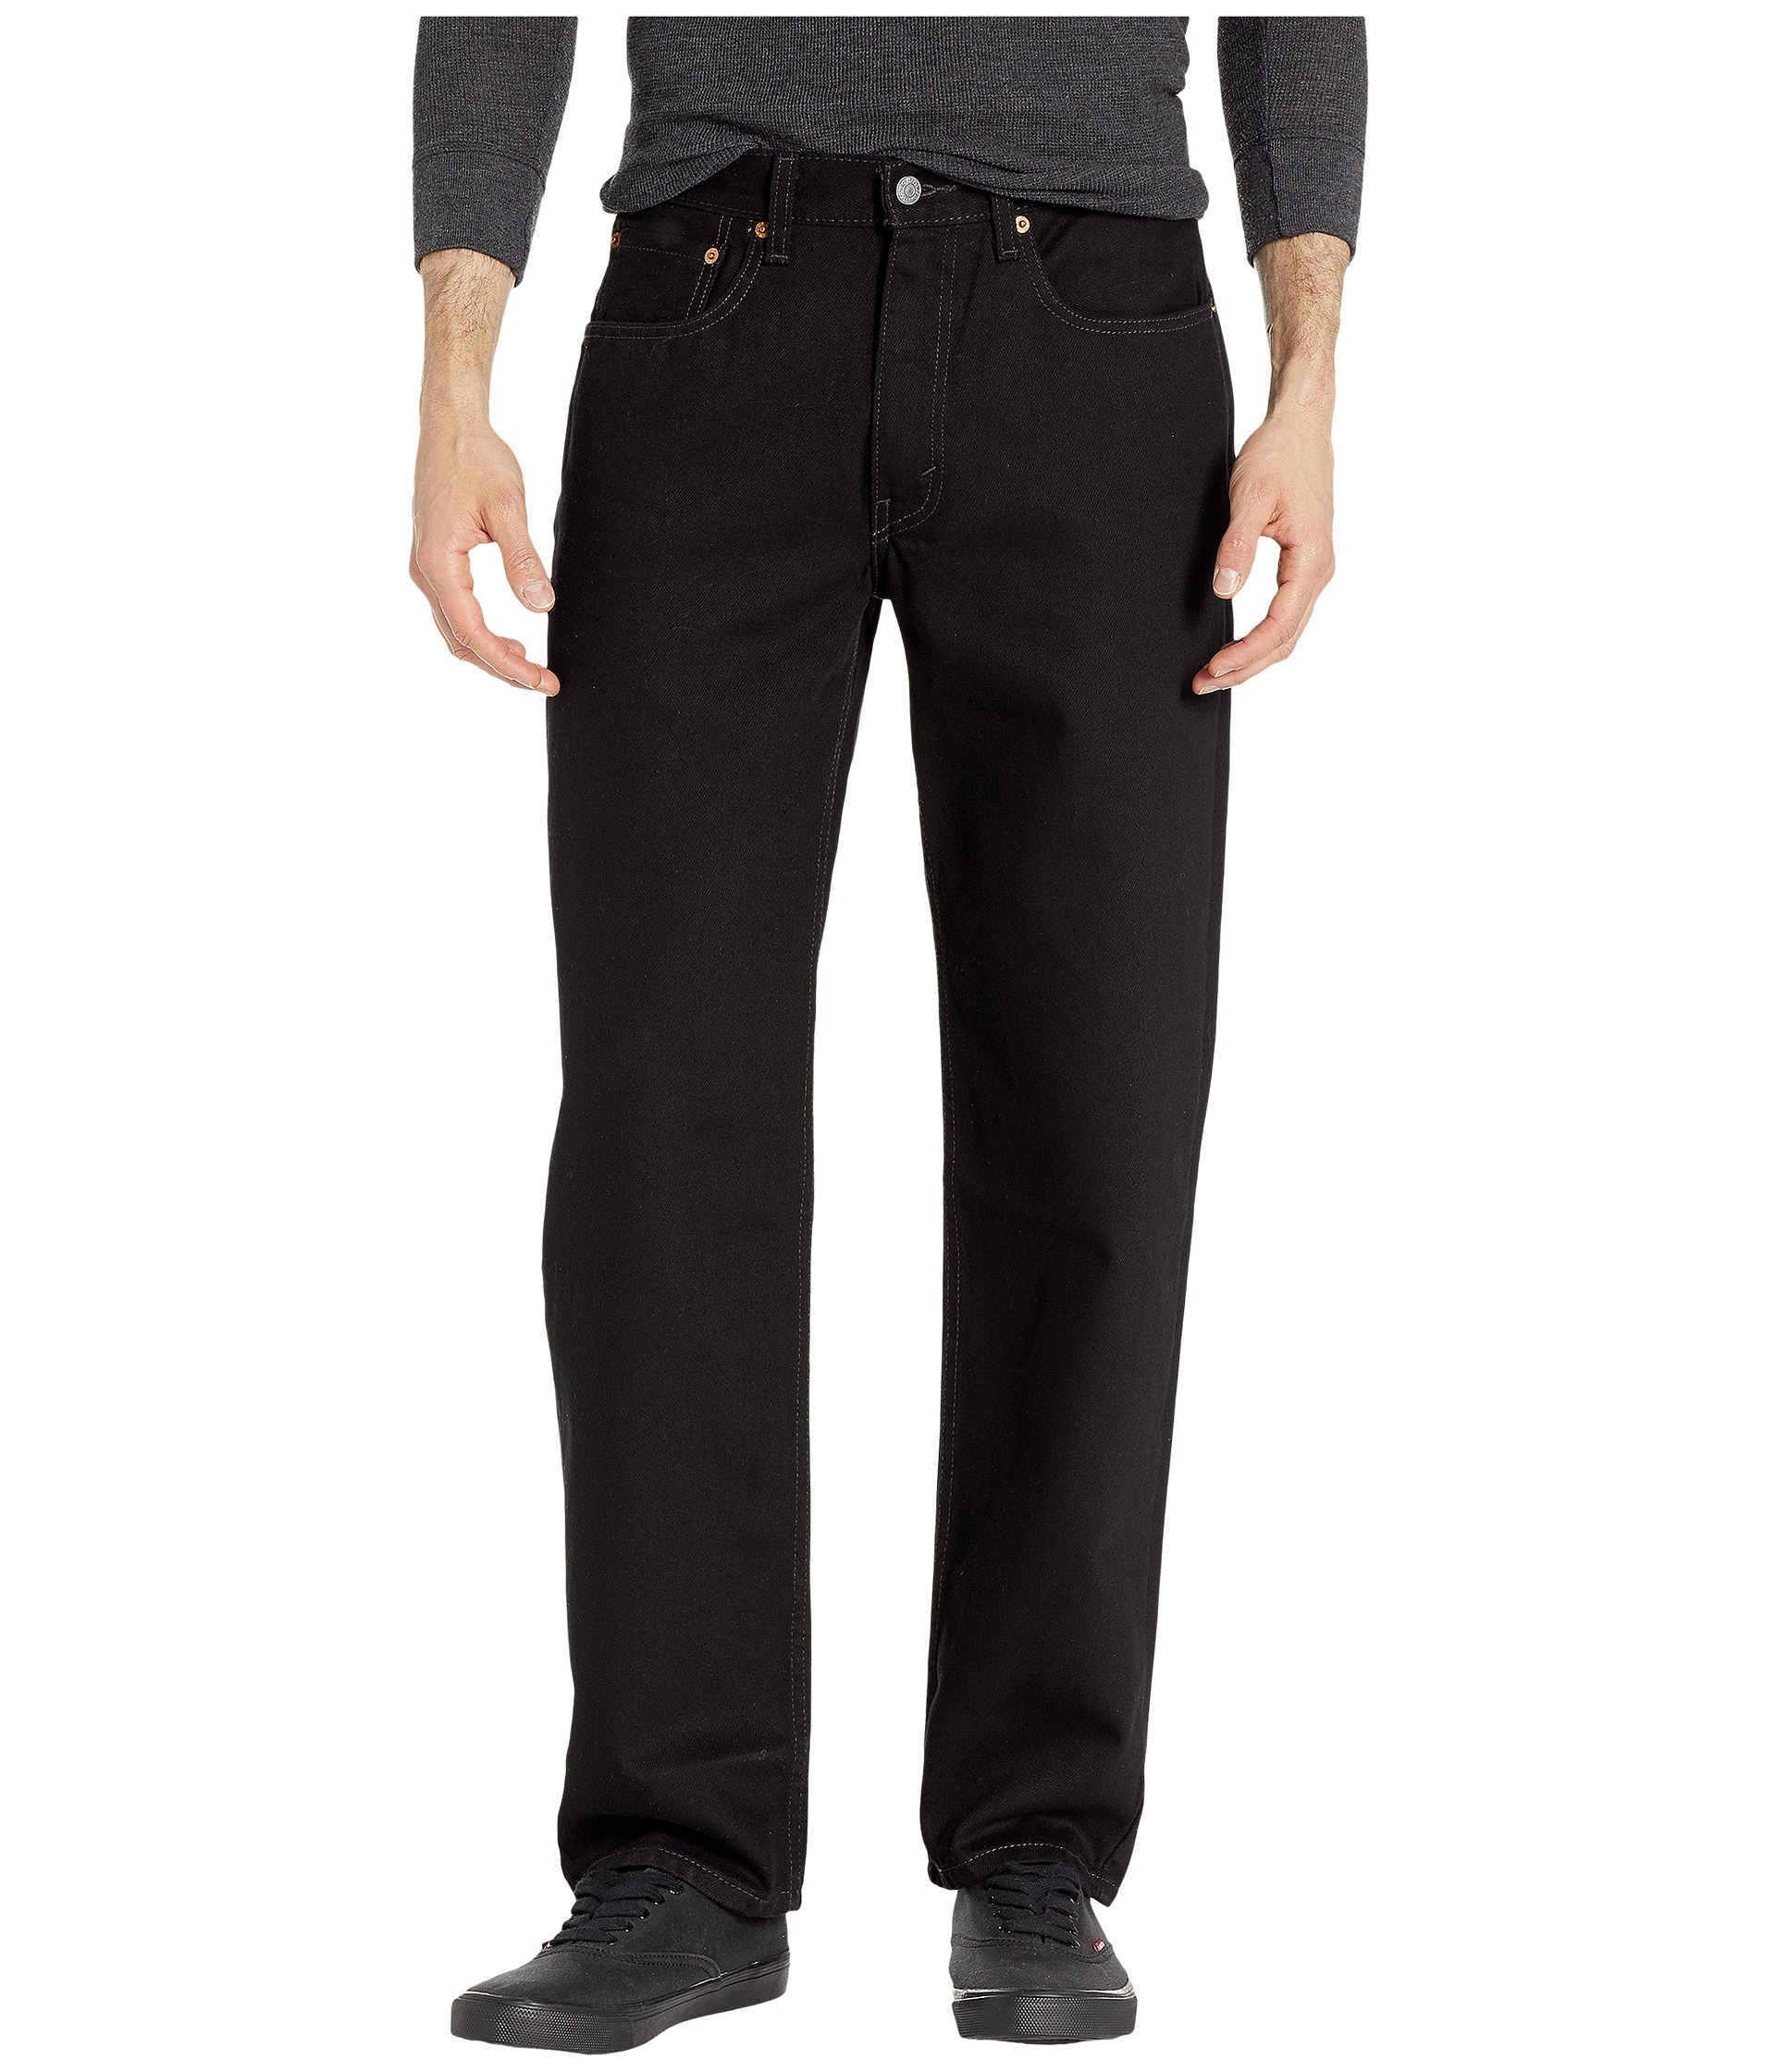 Jeans Men Relaxed Fit | Shipped Free at Zappos